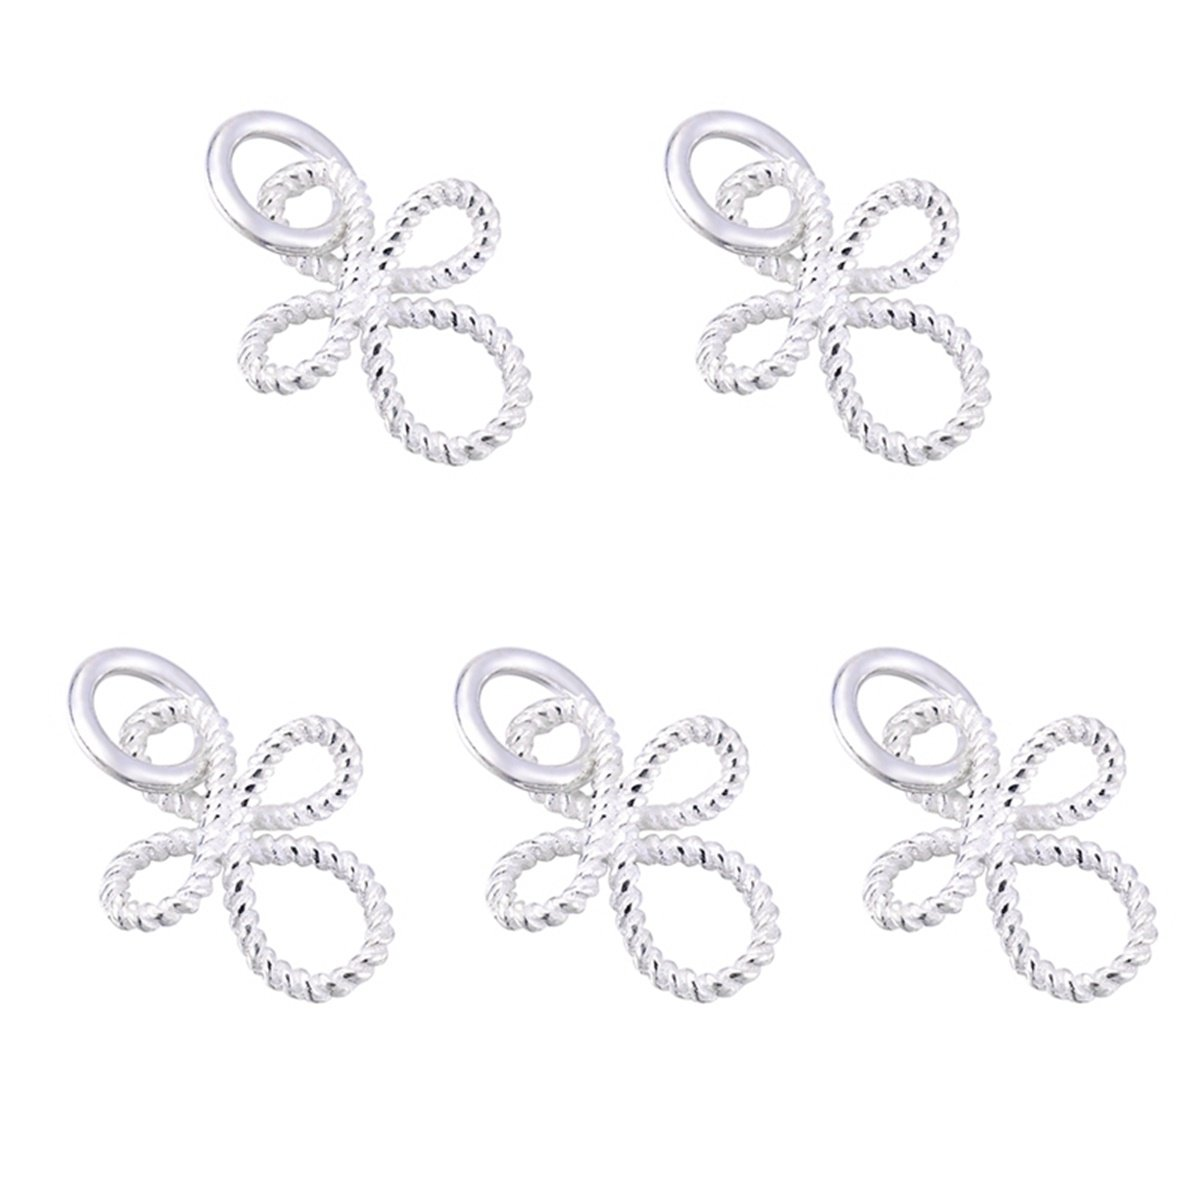 5PCS 925 Sterling Silver Hollow Lotus Necklace Charm for Jewellery Making 11mmx10.5mm Yin Feng 0AF0SA0B3R